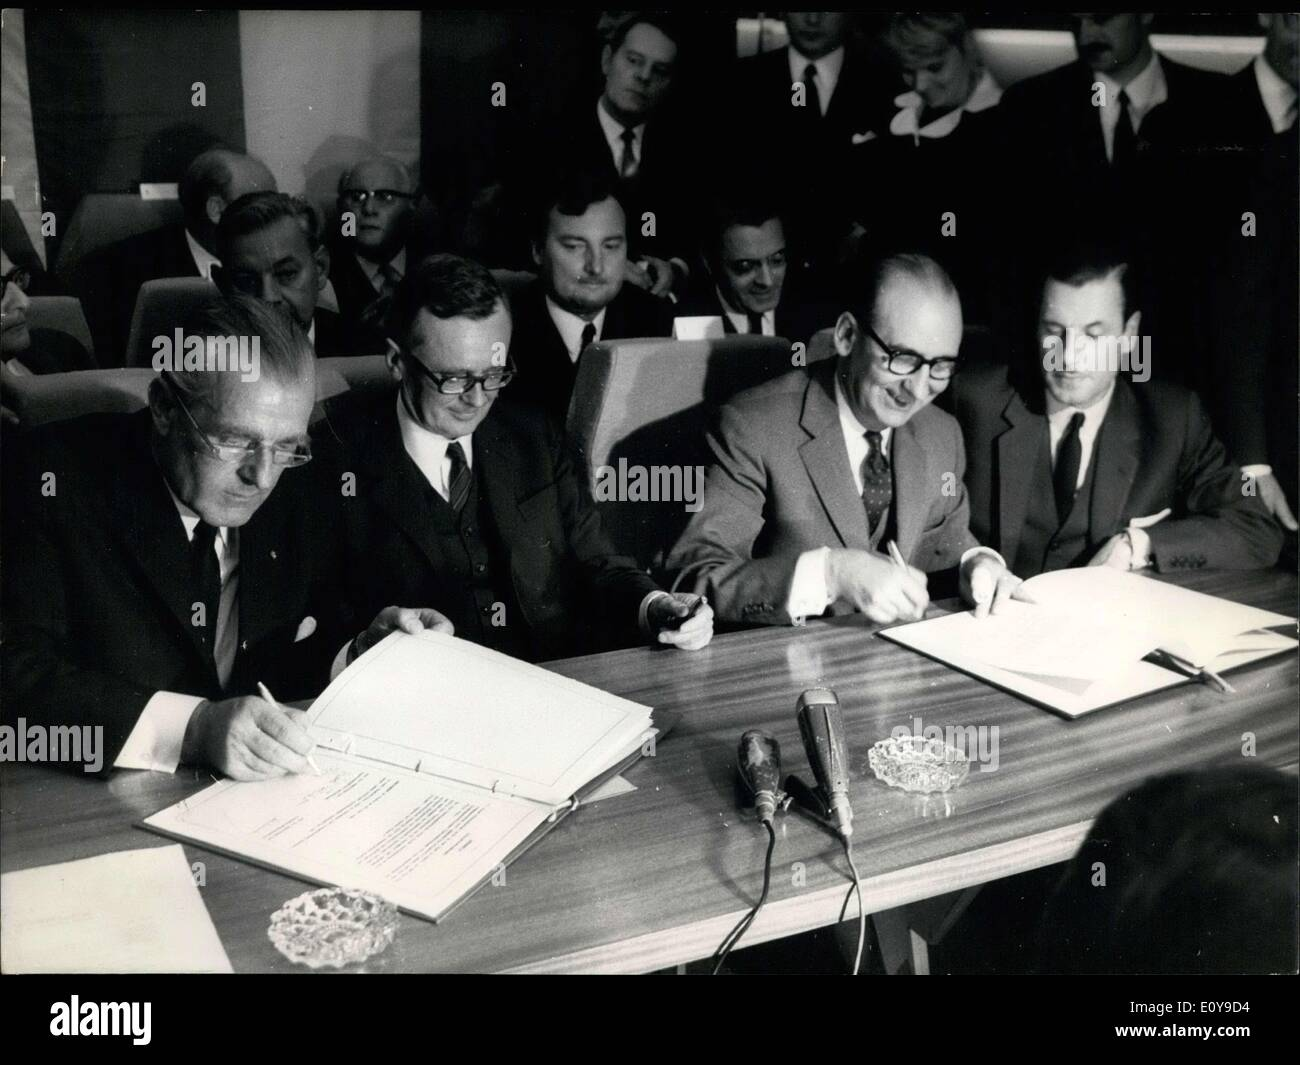 May 29, 1969 - They are at the Aeronautics & Space Exposition at the Bourget Airport signing an agreement between France and Germany. Von Braun is the German Ambassador in Paris. Schiller is the German Minister of Economics. Chamant is the French Minister of Transportation. - Stock Image